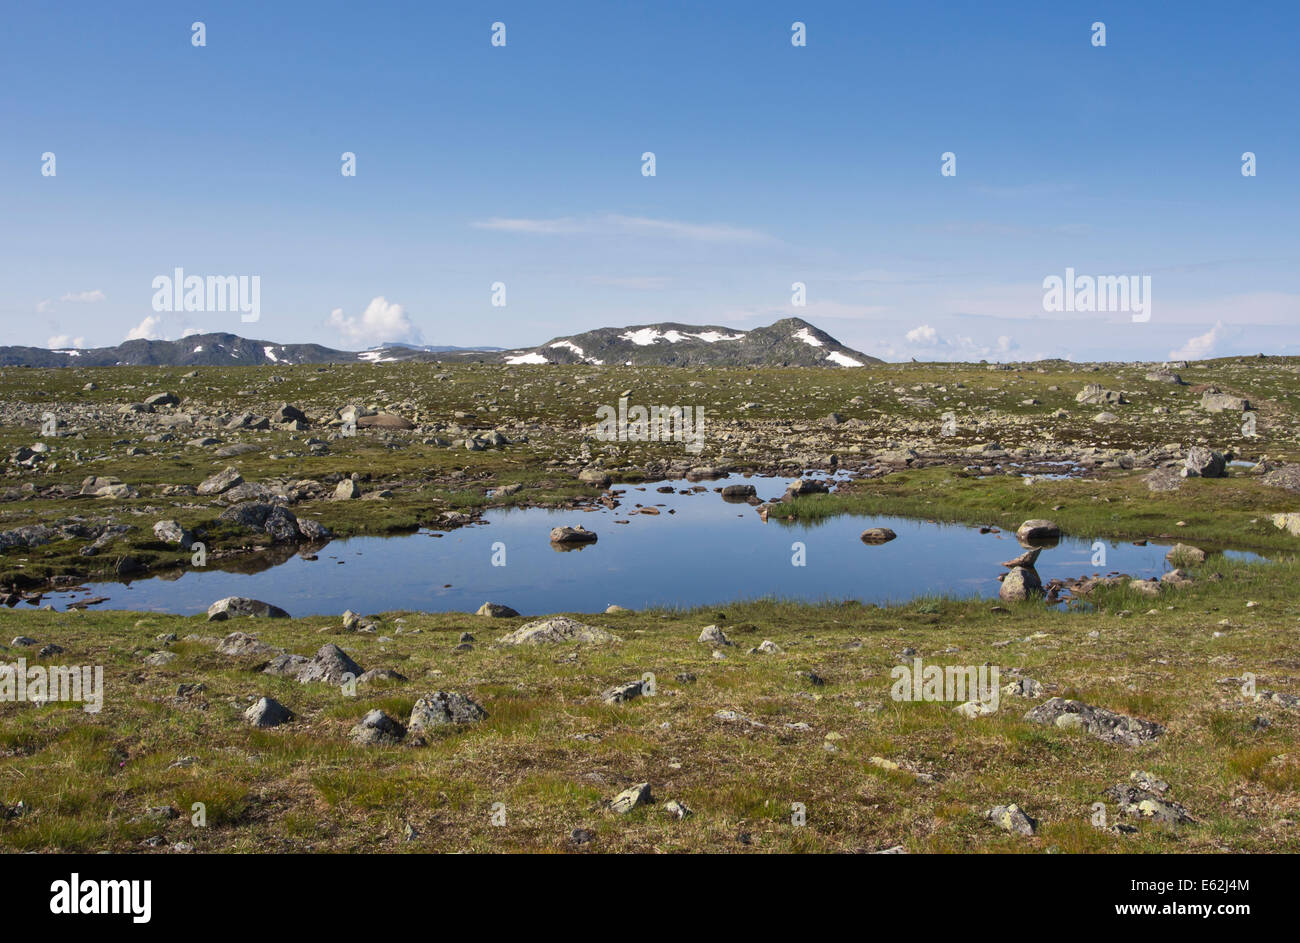 Valdresflya in Jotunheimen Norway, barren but inviting in the summer sun, small lake reflecting the blue sky - Stock Image